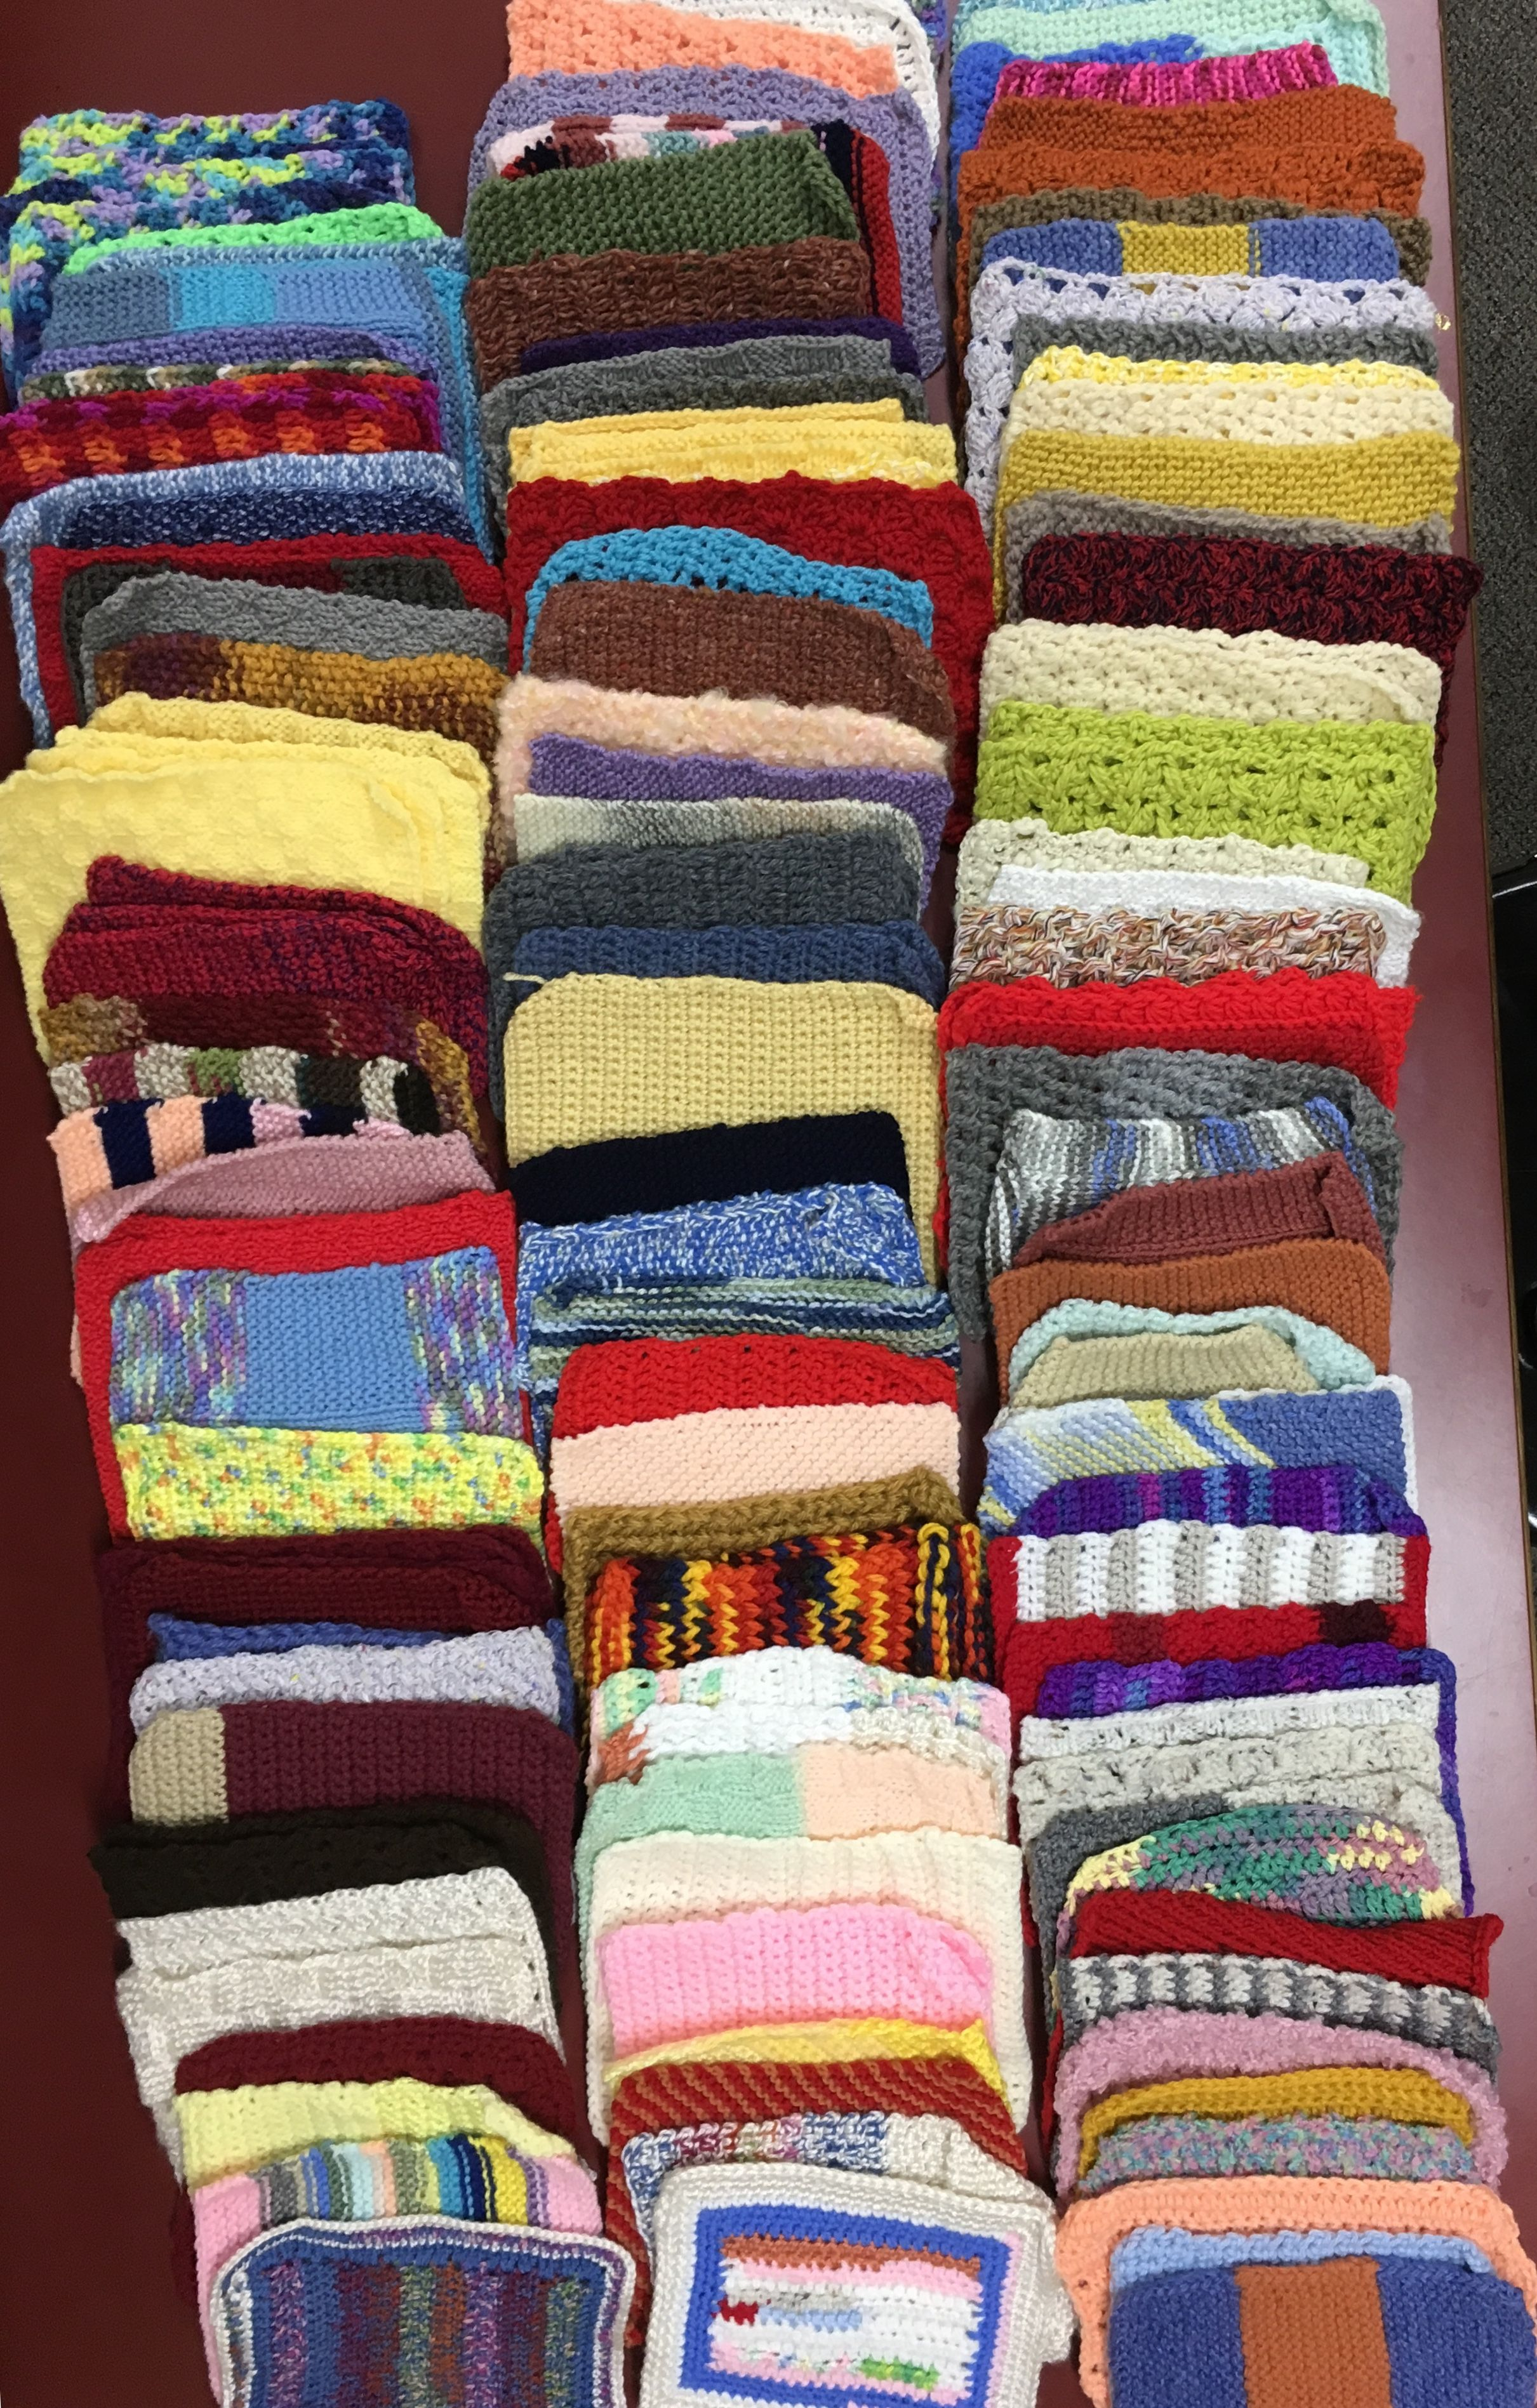 Summer charity 2018 Knitted squares for Warm up America